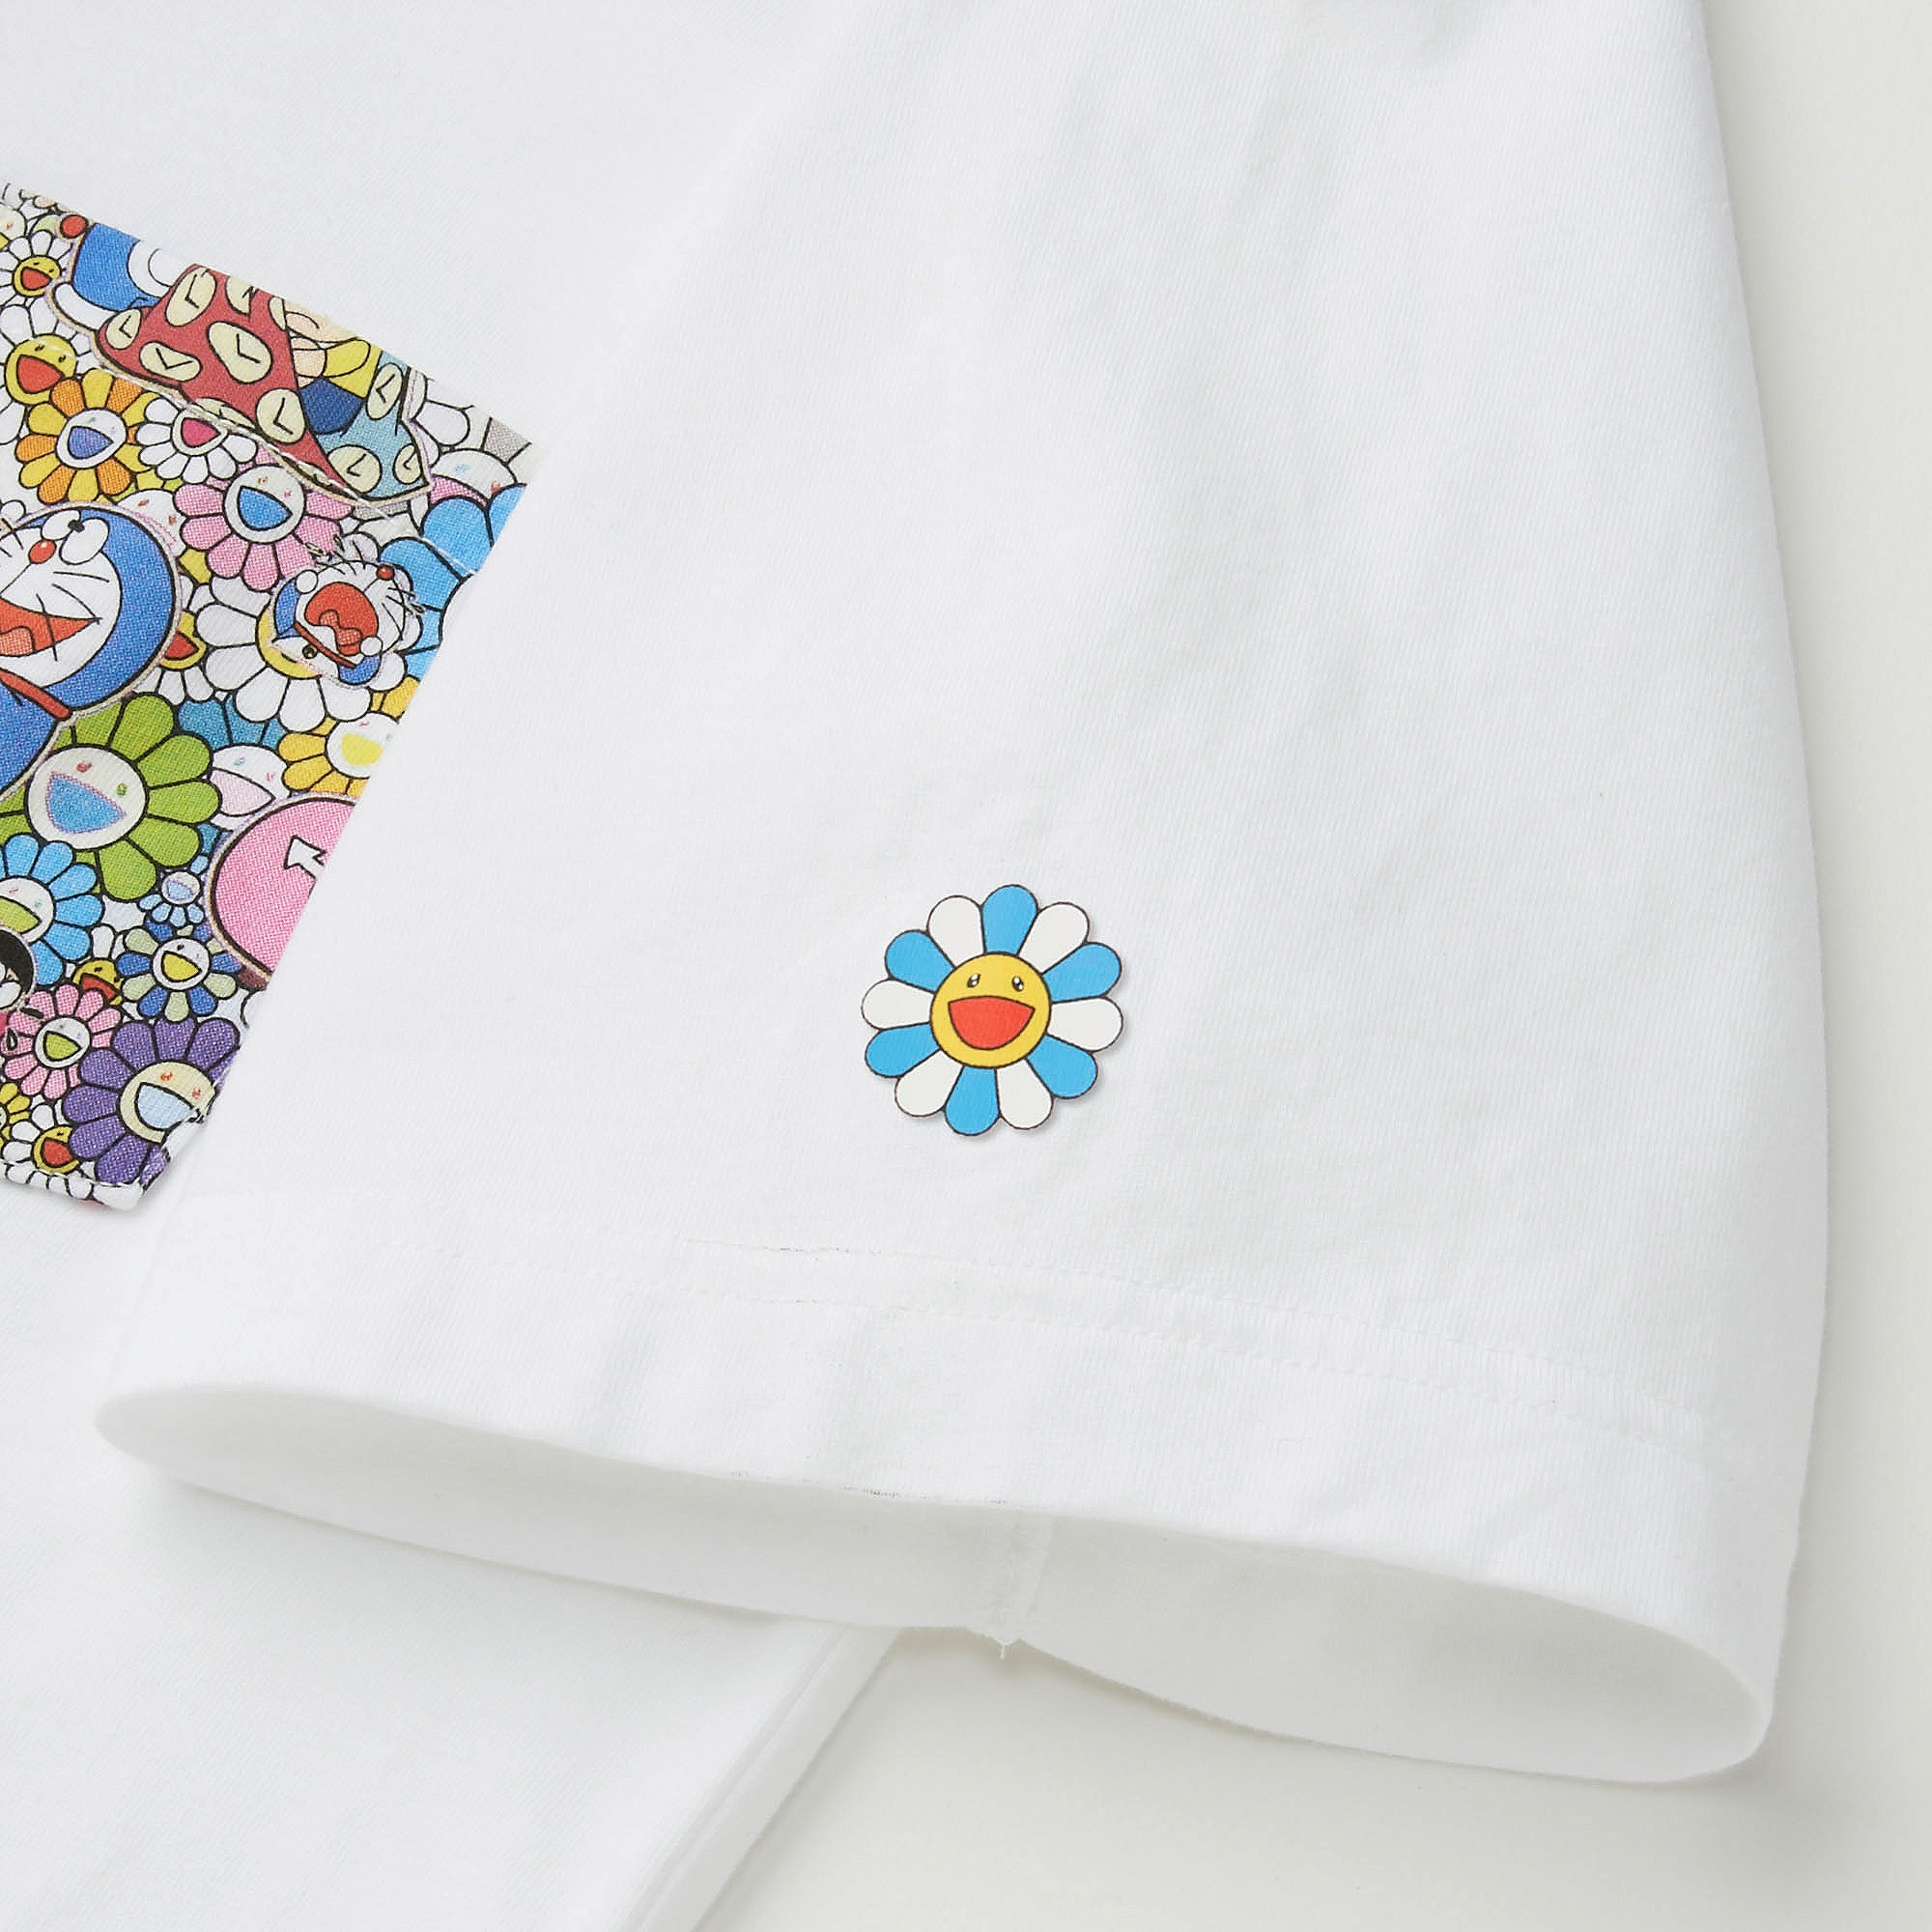 a0231dcd Uniqlo DORAEMON X TAKASHI MURAKAMI SHORT SLEEVE GRAPHIC T-SHIRT at ...